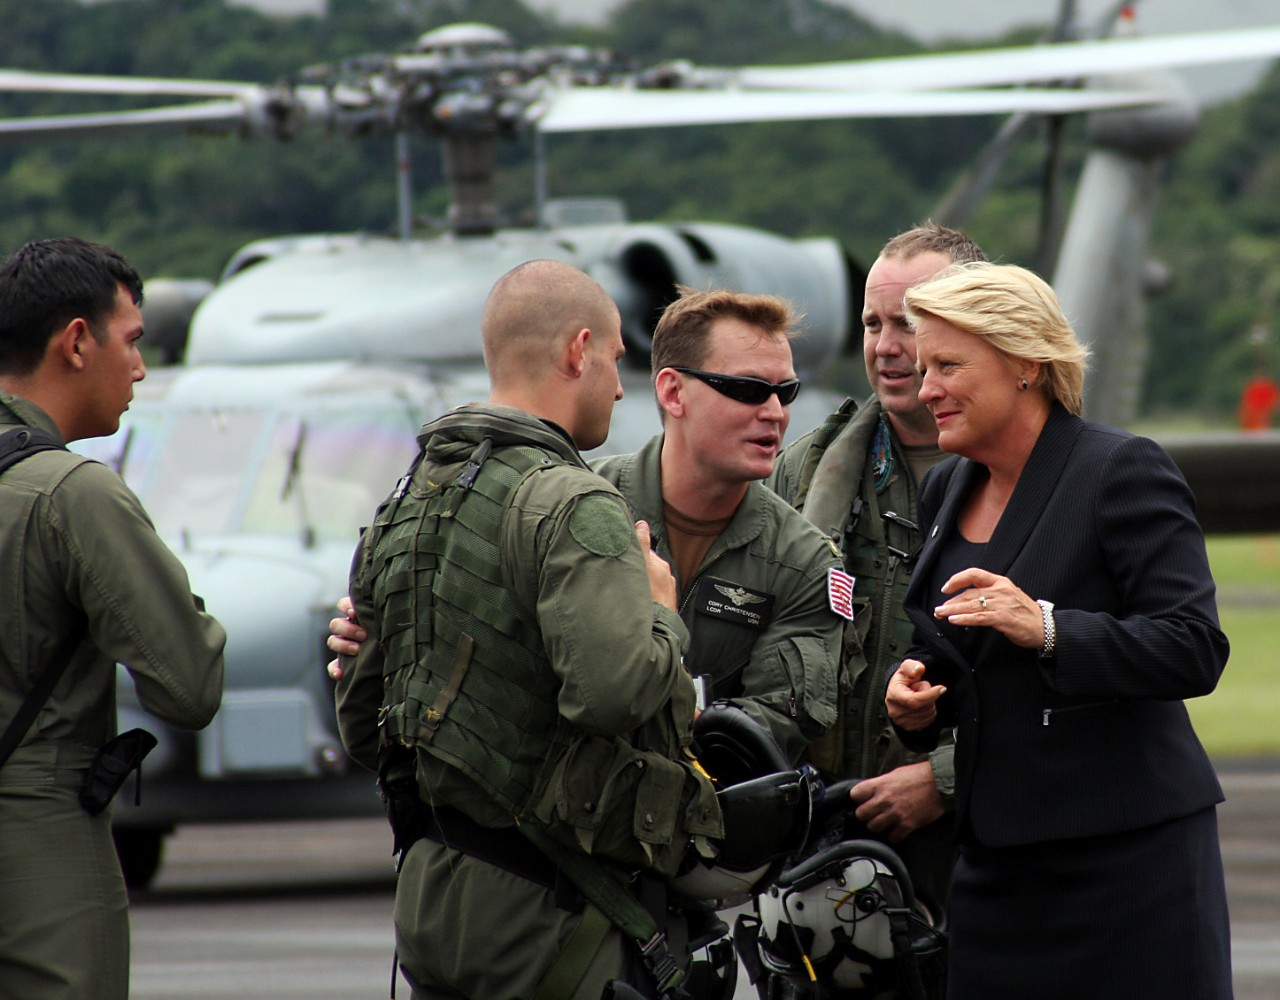 United States Ambassador to Panama Barbara Stephenson (right) and Lt. Cmdr. Cory Christensen (left), from the Office of Defense Cooperation at the U.S. Embassy at Panama, greet the aircrew of Samuel B. Roberts' embarked SH-60B Seahawk of HSL-60 Detachment 2, 26 November 2008. Torrential rains cause severe flooding in the Central American country and the ship diverts from her counter-narcotics patrols to render humanitarian assistance to the Panamanians. (U.S. Navy Photograph 081125-N-0000X-001, Navy NewsStand)